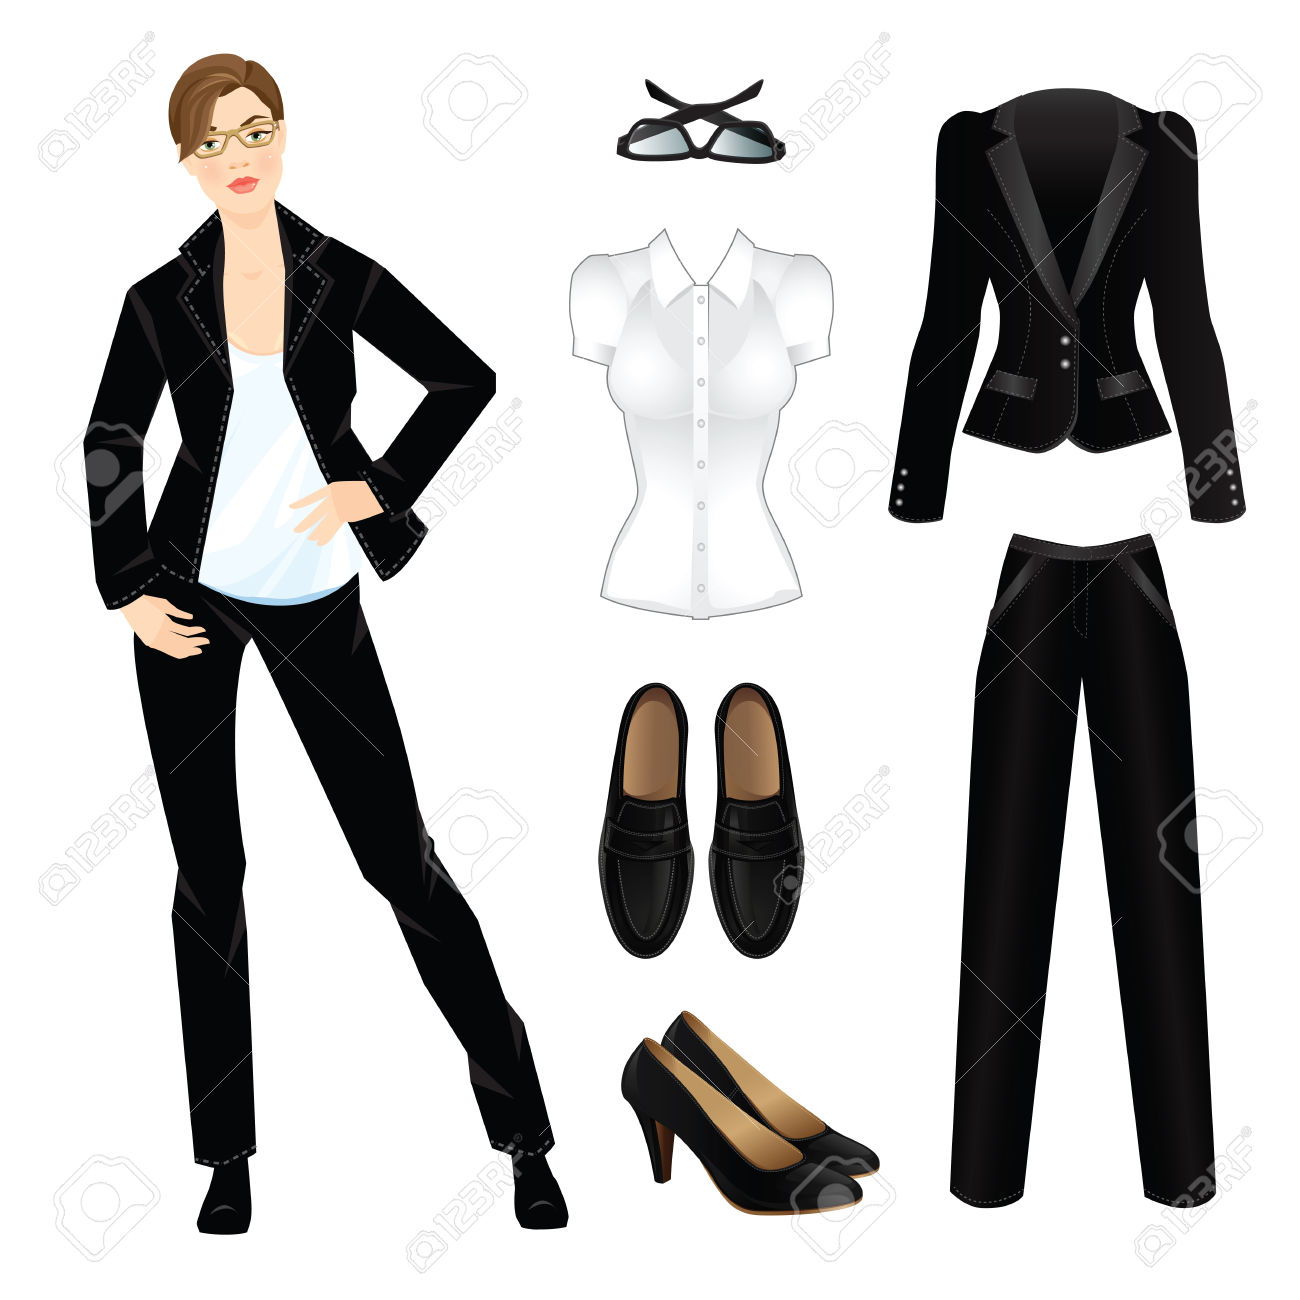 1,885 Dress Code Stock Vector Illustration And Royalty Free Dress.